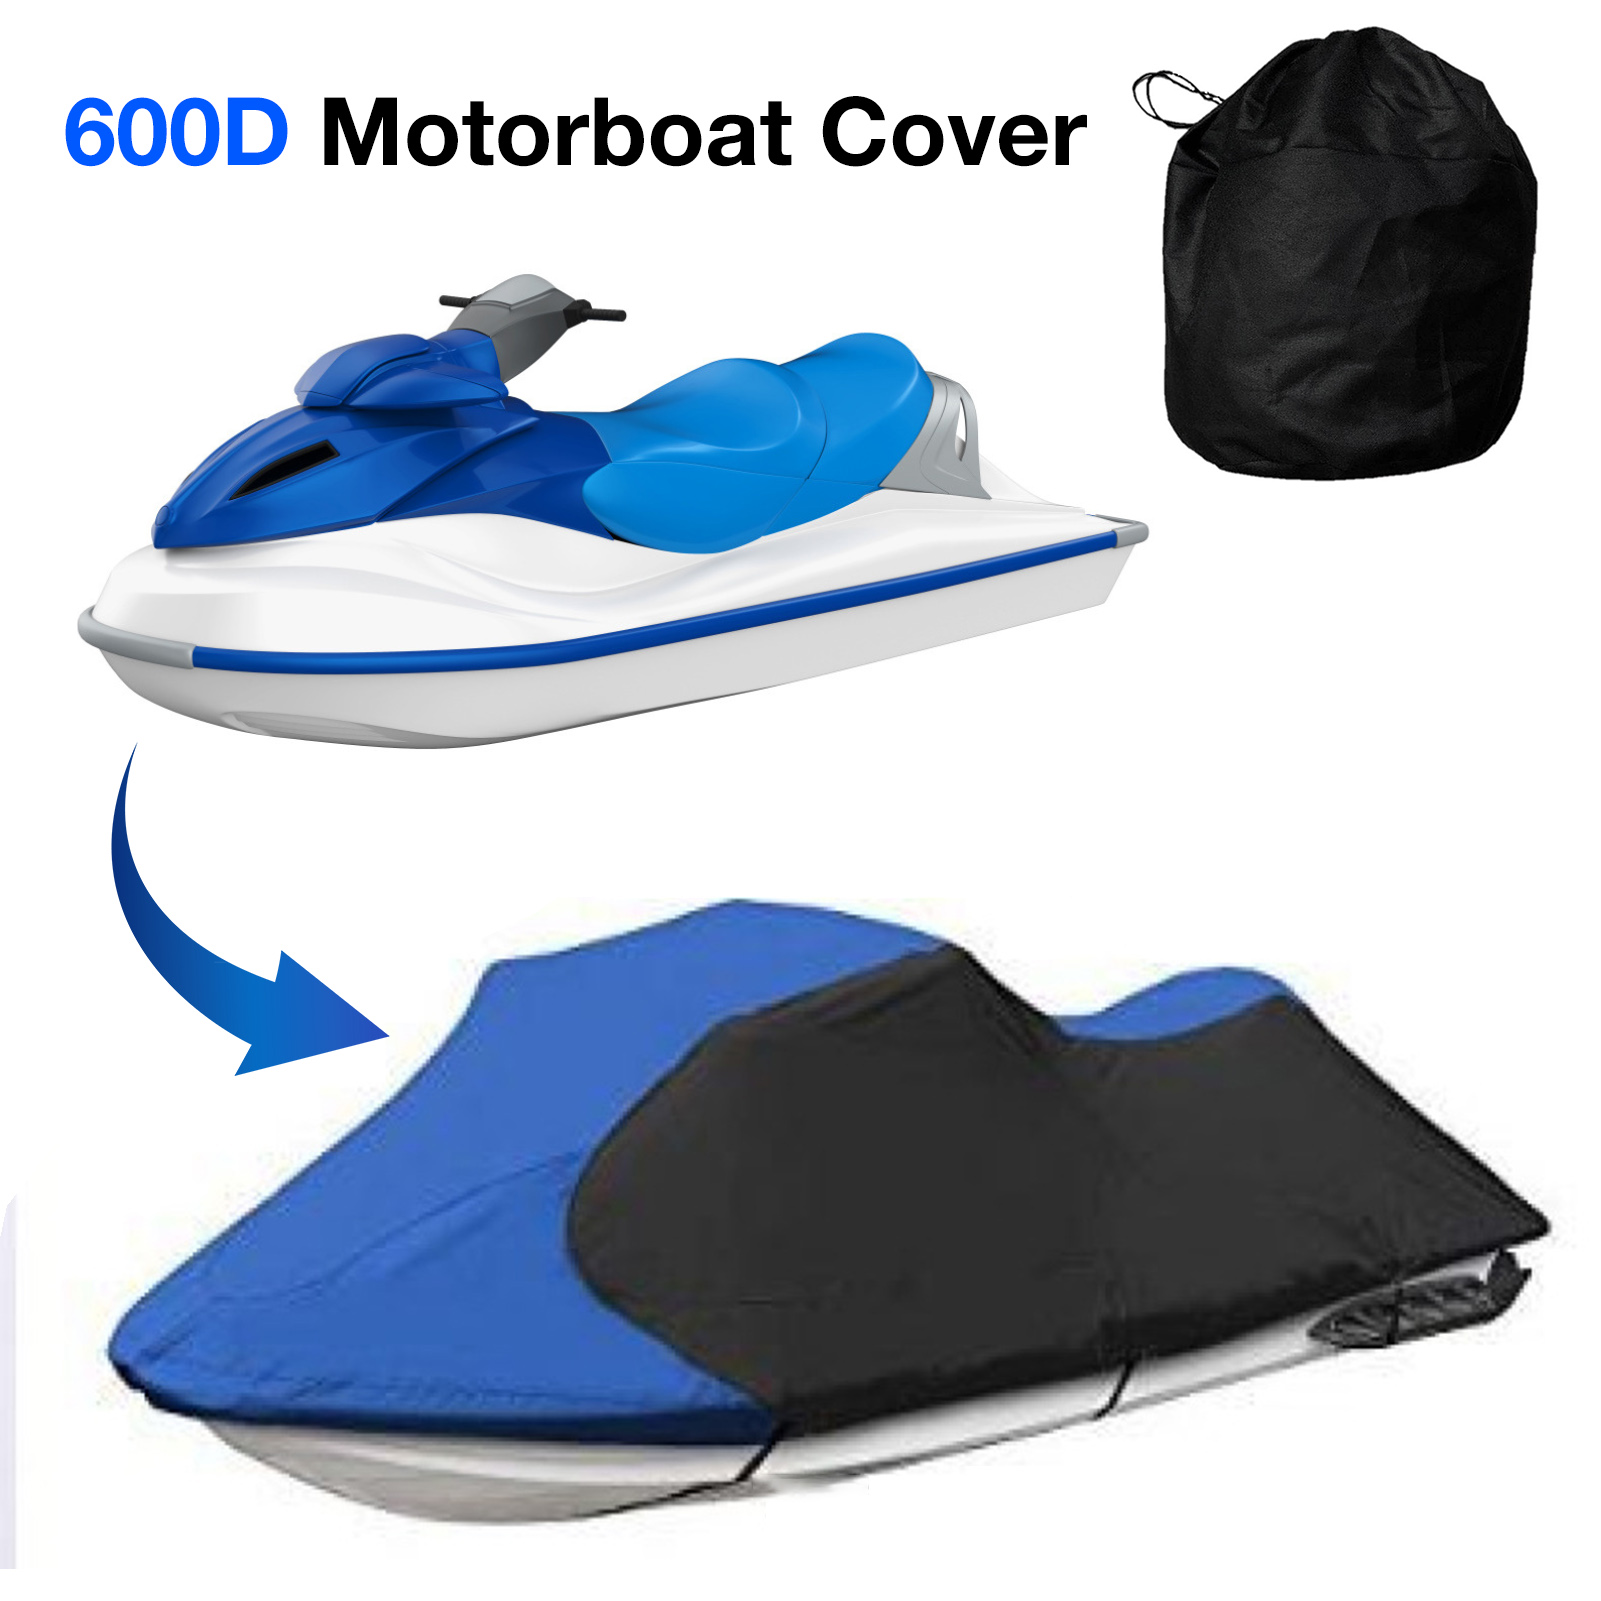 600D Motorboat Cover High-quality Durable Heavy Duty Waterproof Dustproof Sunscreen Anti-UV Boat Protector Boat Accessories